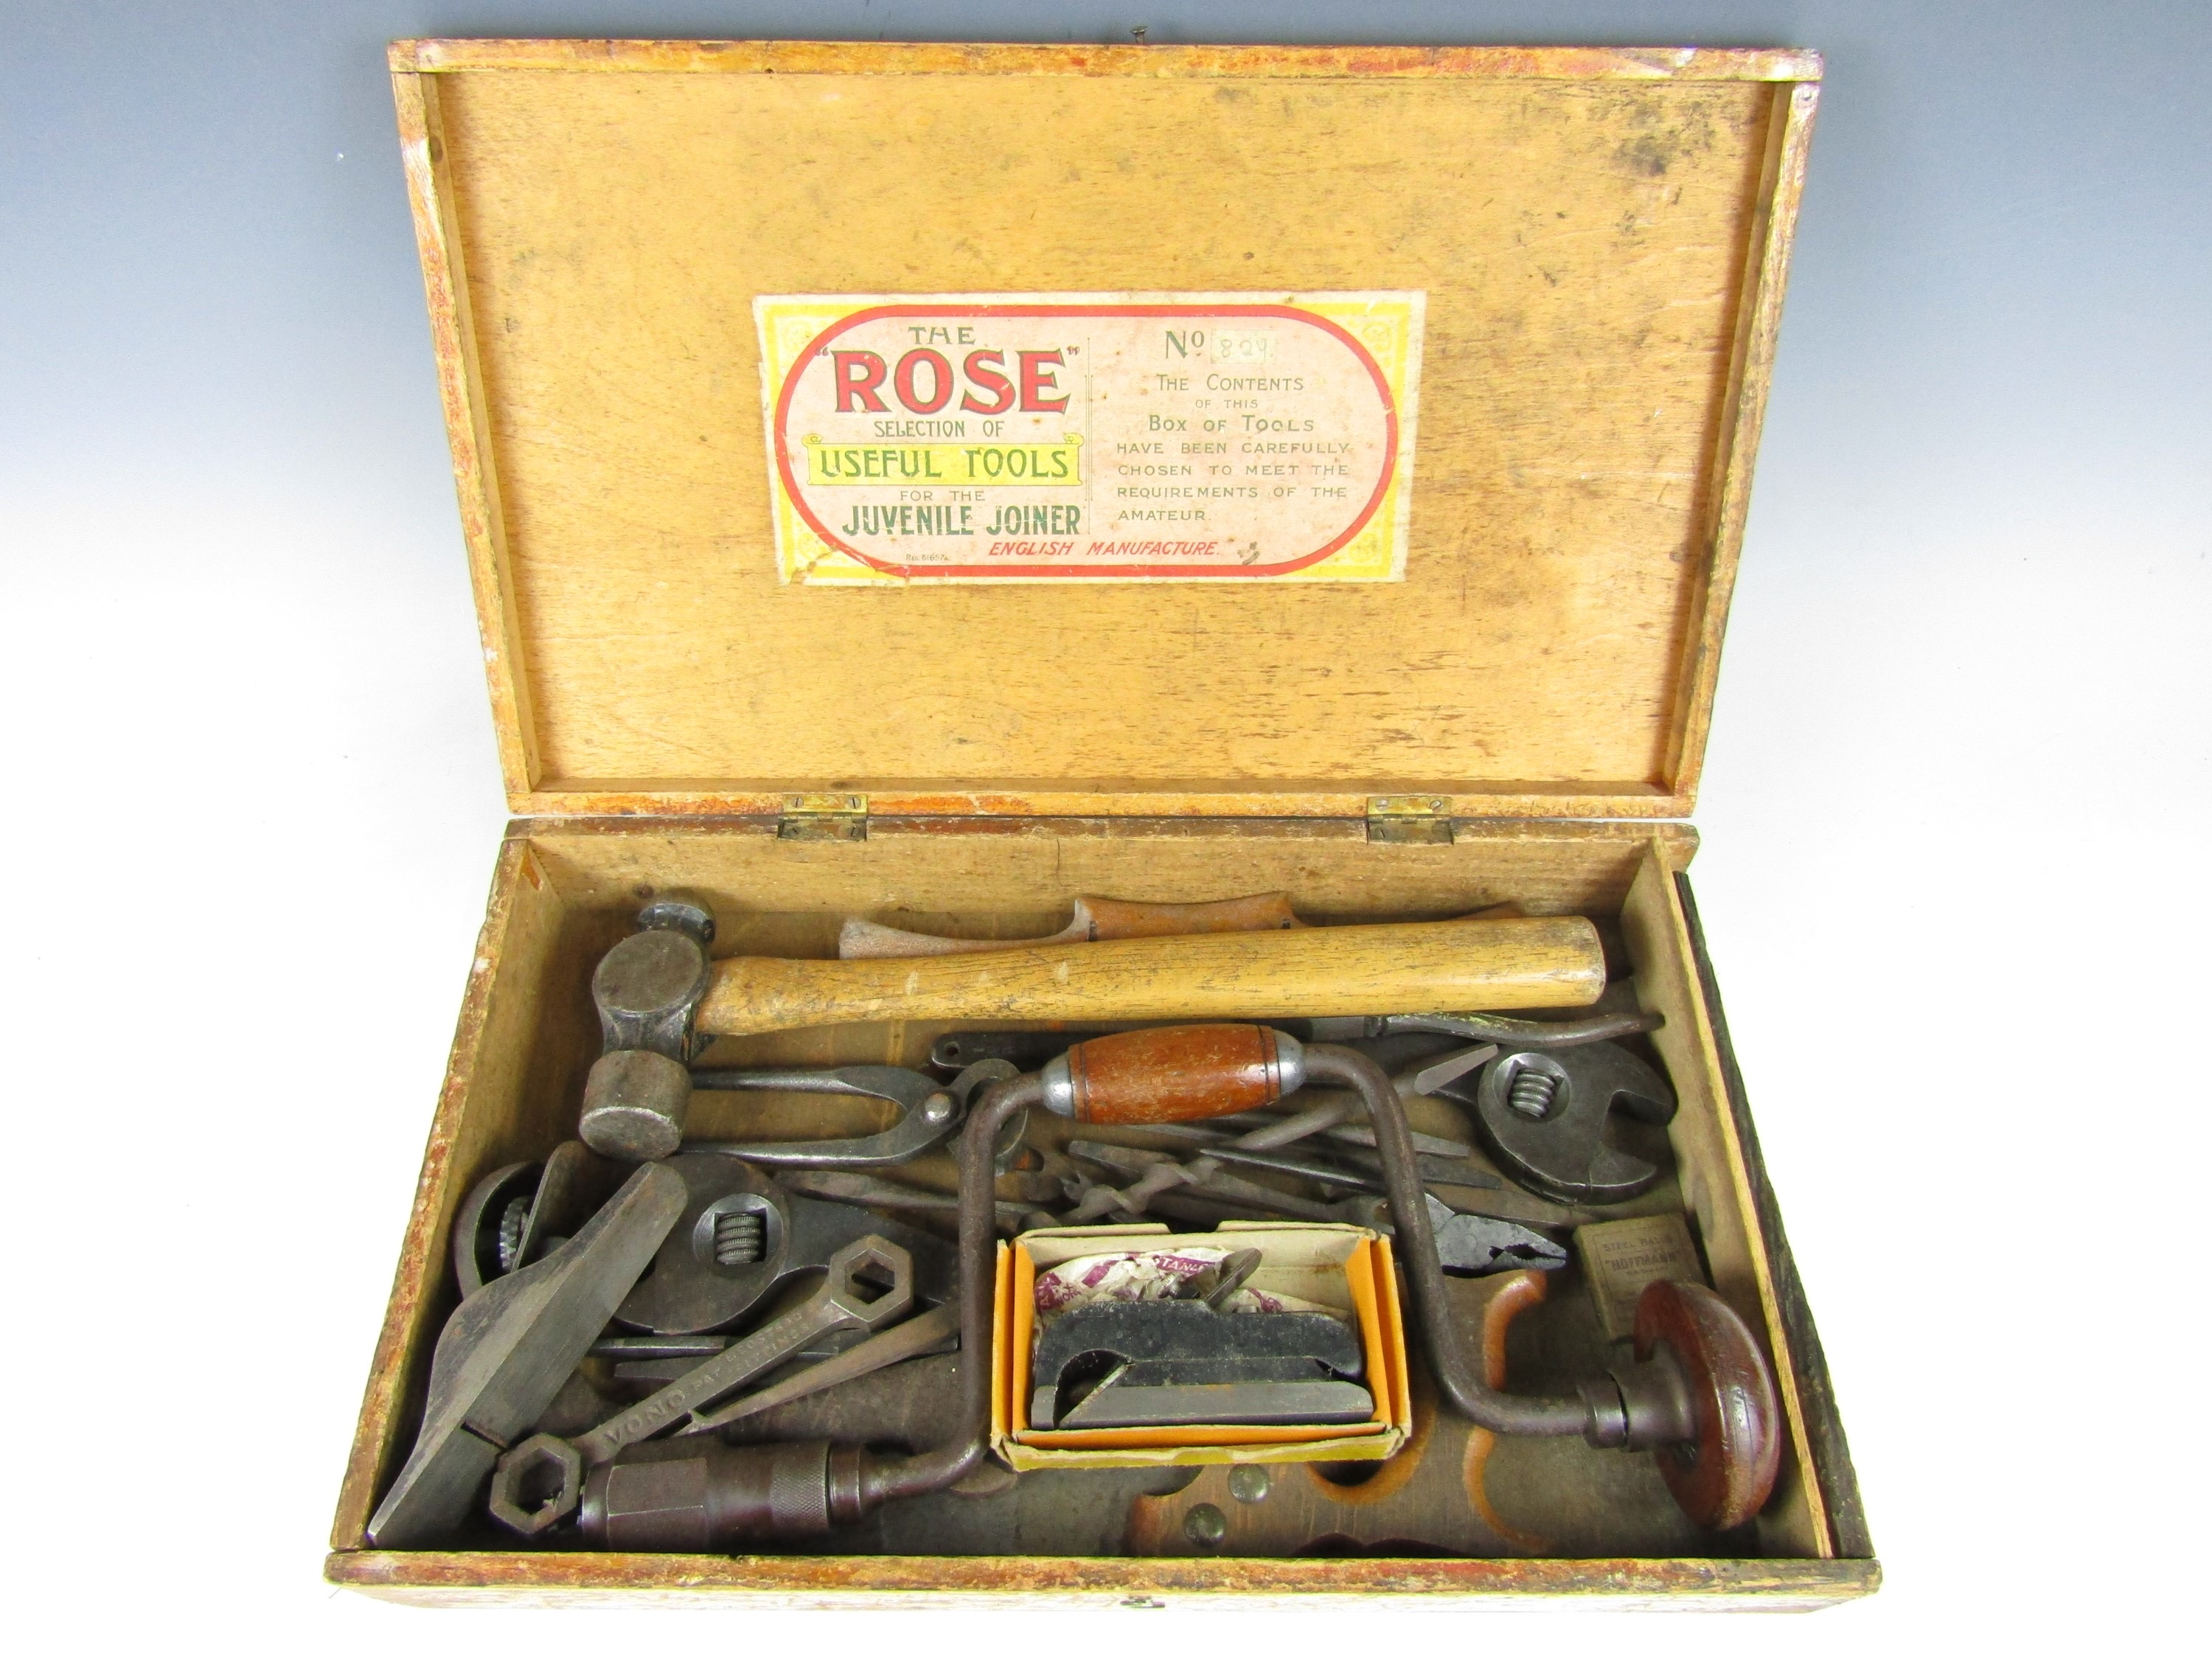 Lot 50 - A box of vintage tools labelled The Rose Selection of Useful Tools for the Juvenile Joiner